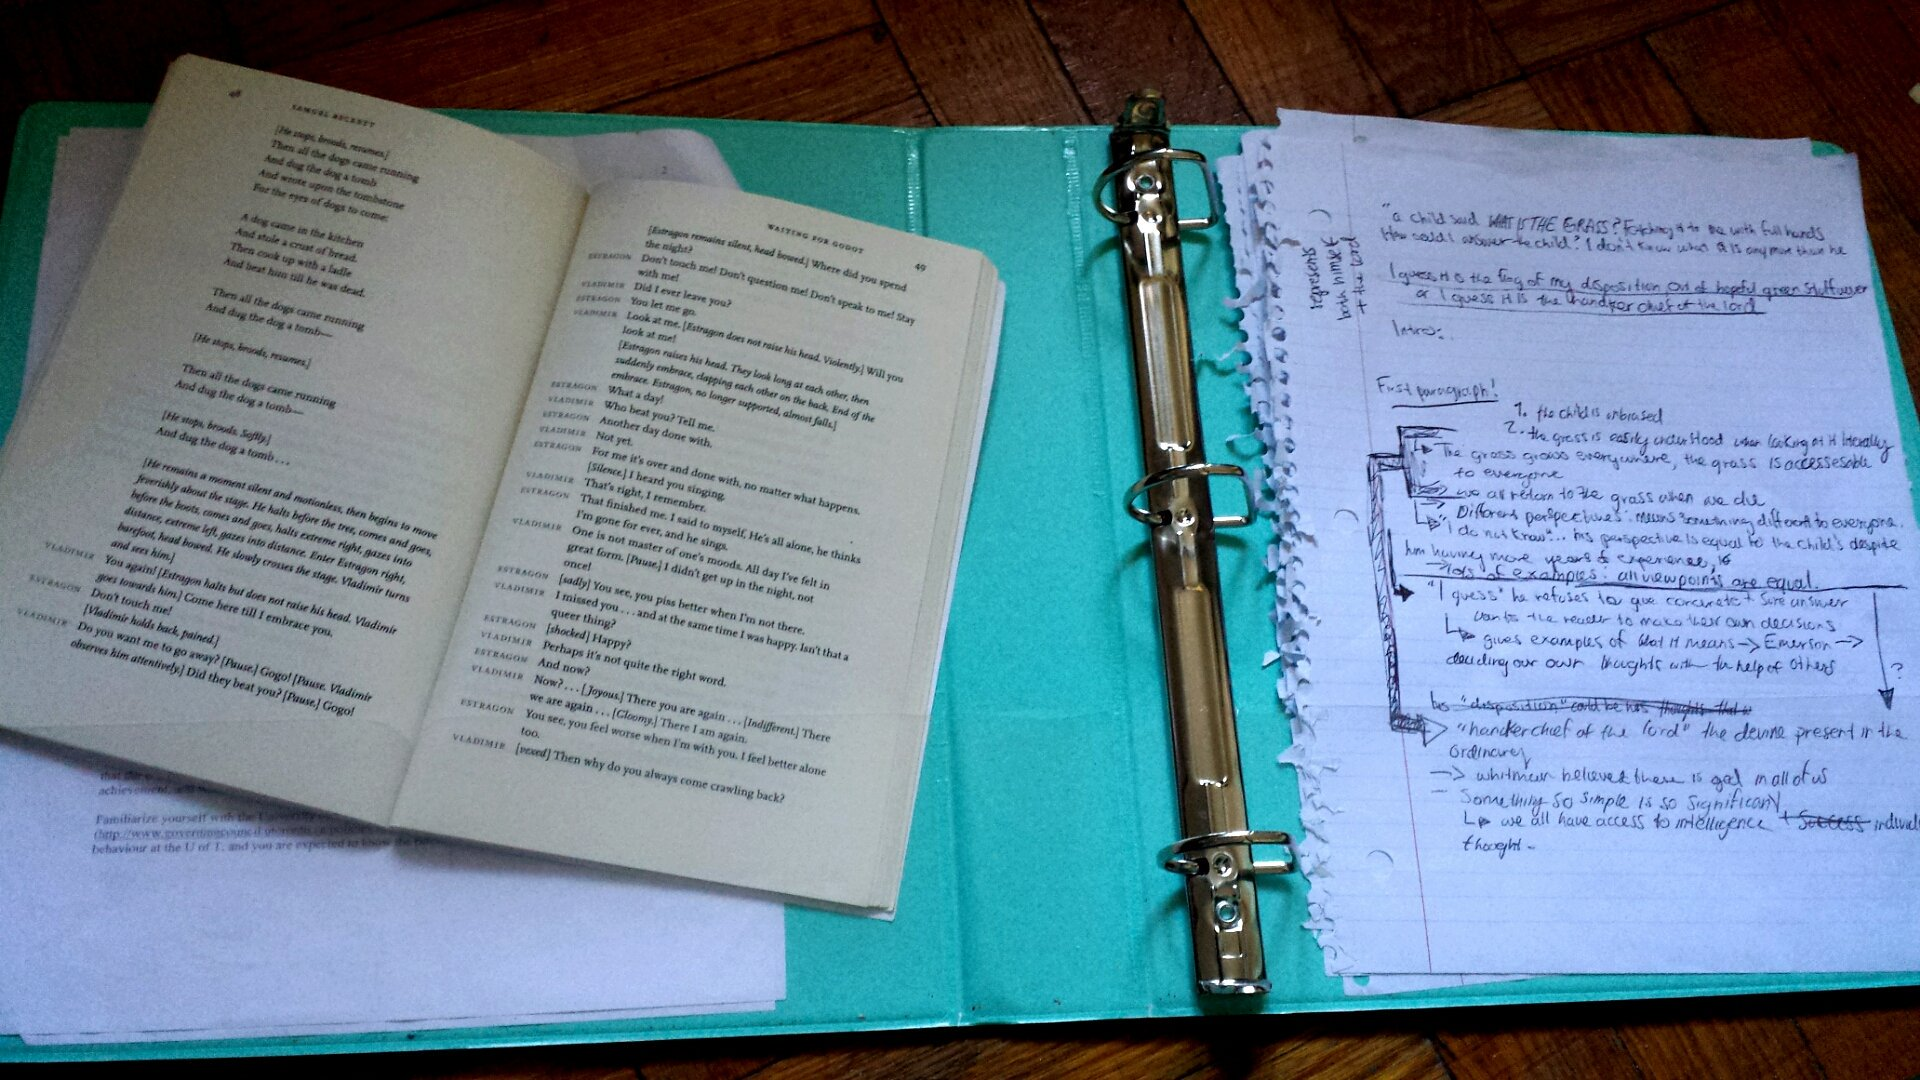 a collection of papers littered with black handwriting, next to an open playbook-both resting atop a bright blue binder